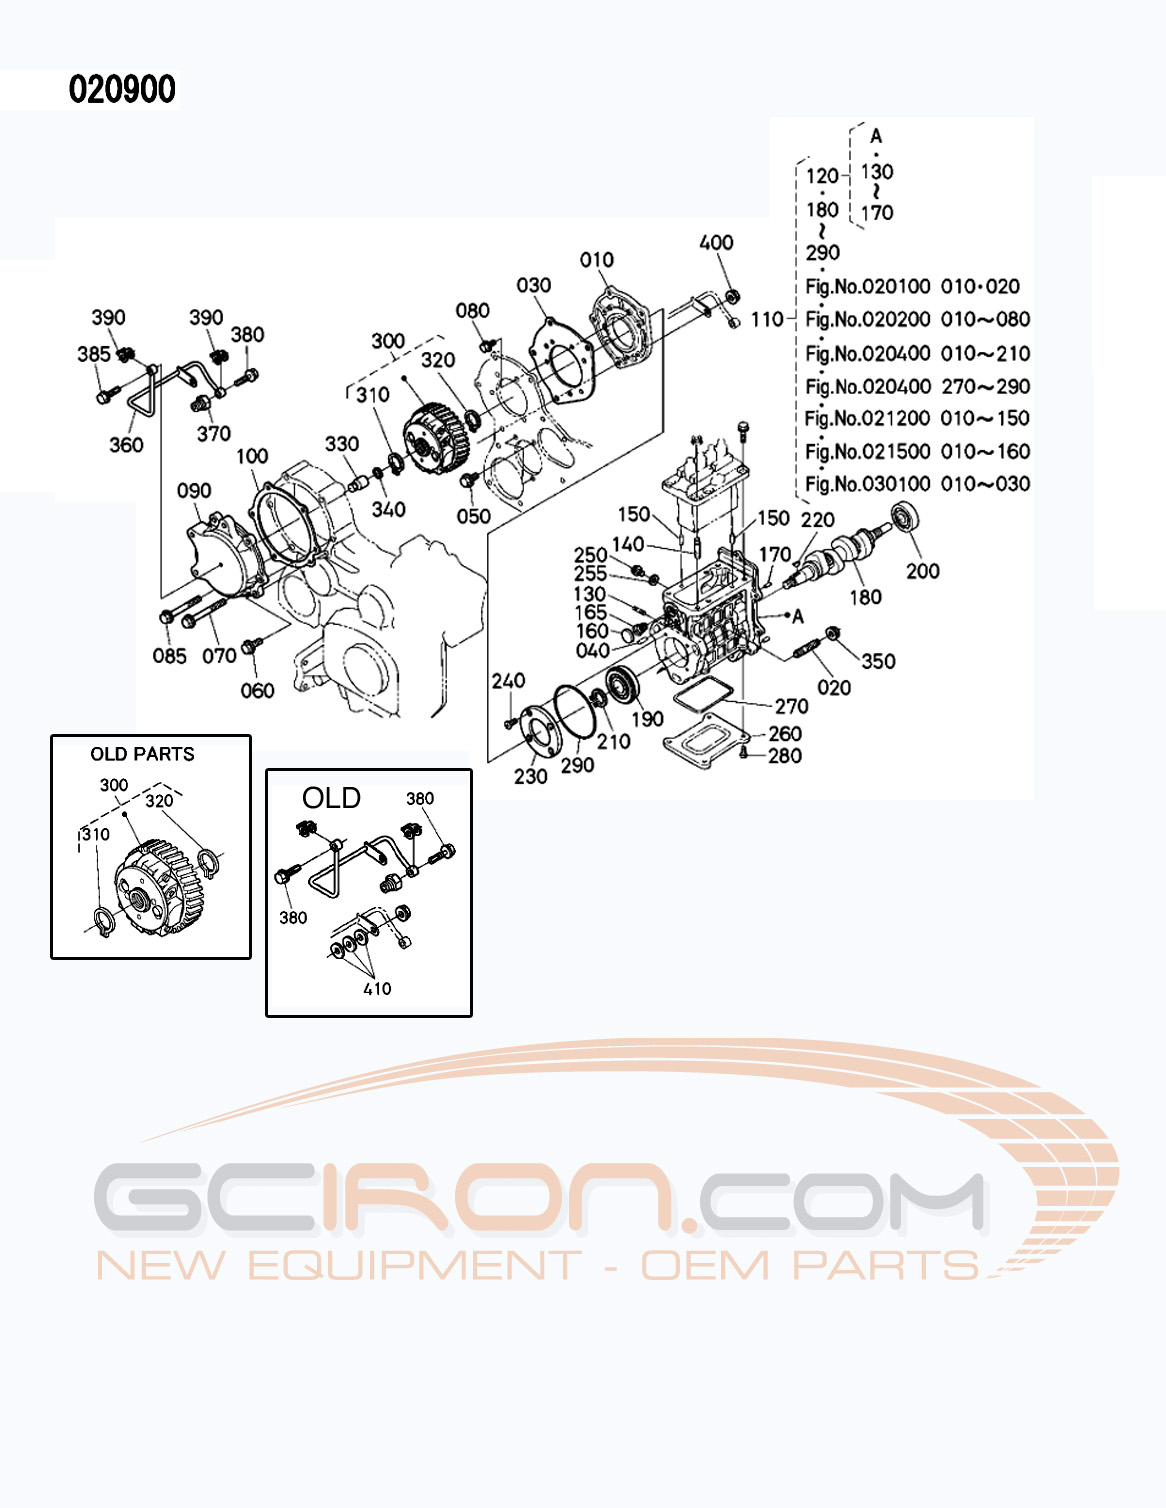 2910V3600E3B116_1 construction equipment parts jlg parts from www gciron com kubota d722 wiring diagram at crackthecode.co